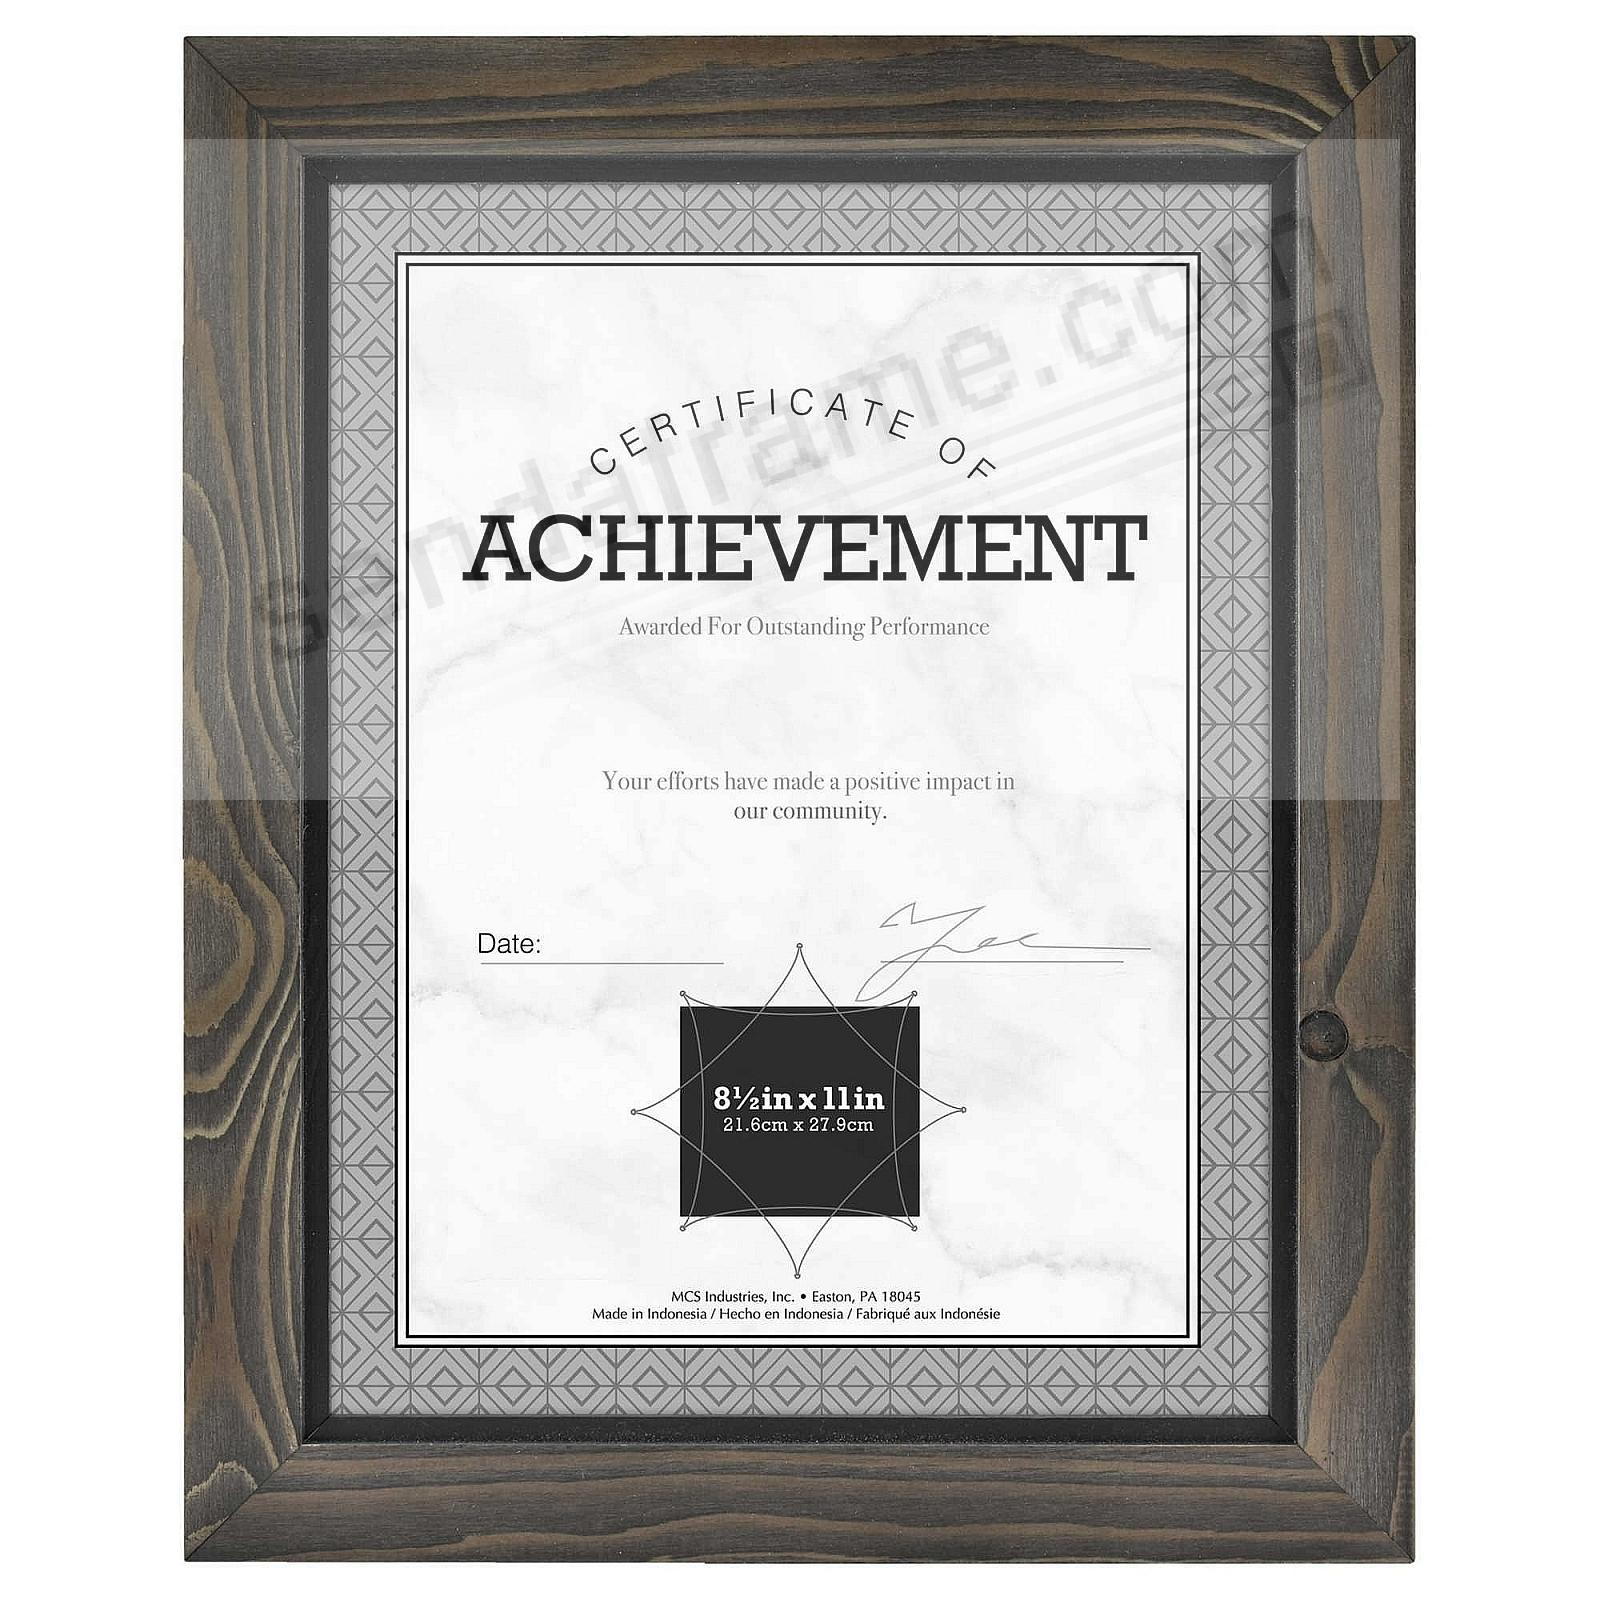 TIMBER Distressed Gray/Black Wood Frame by MCS®